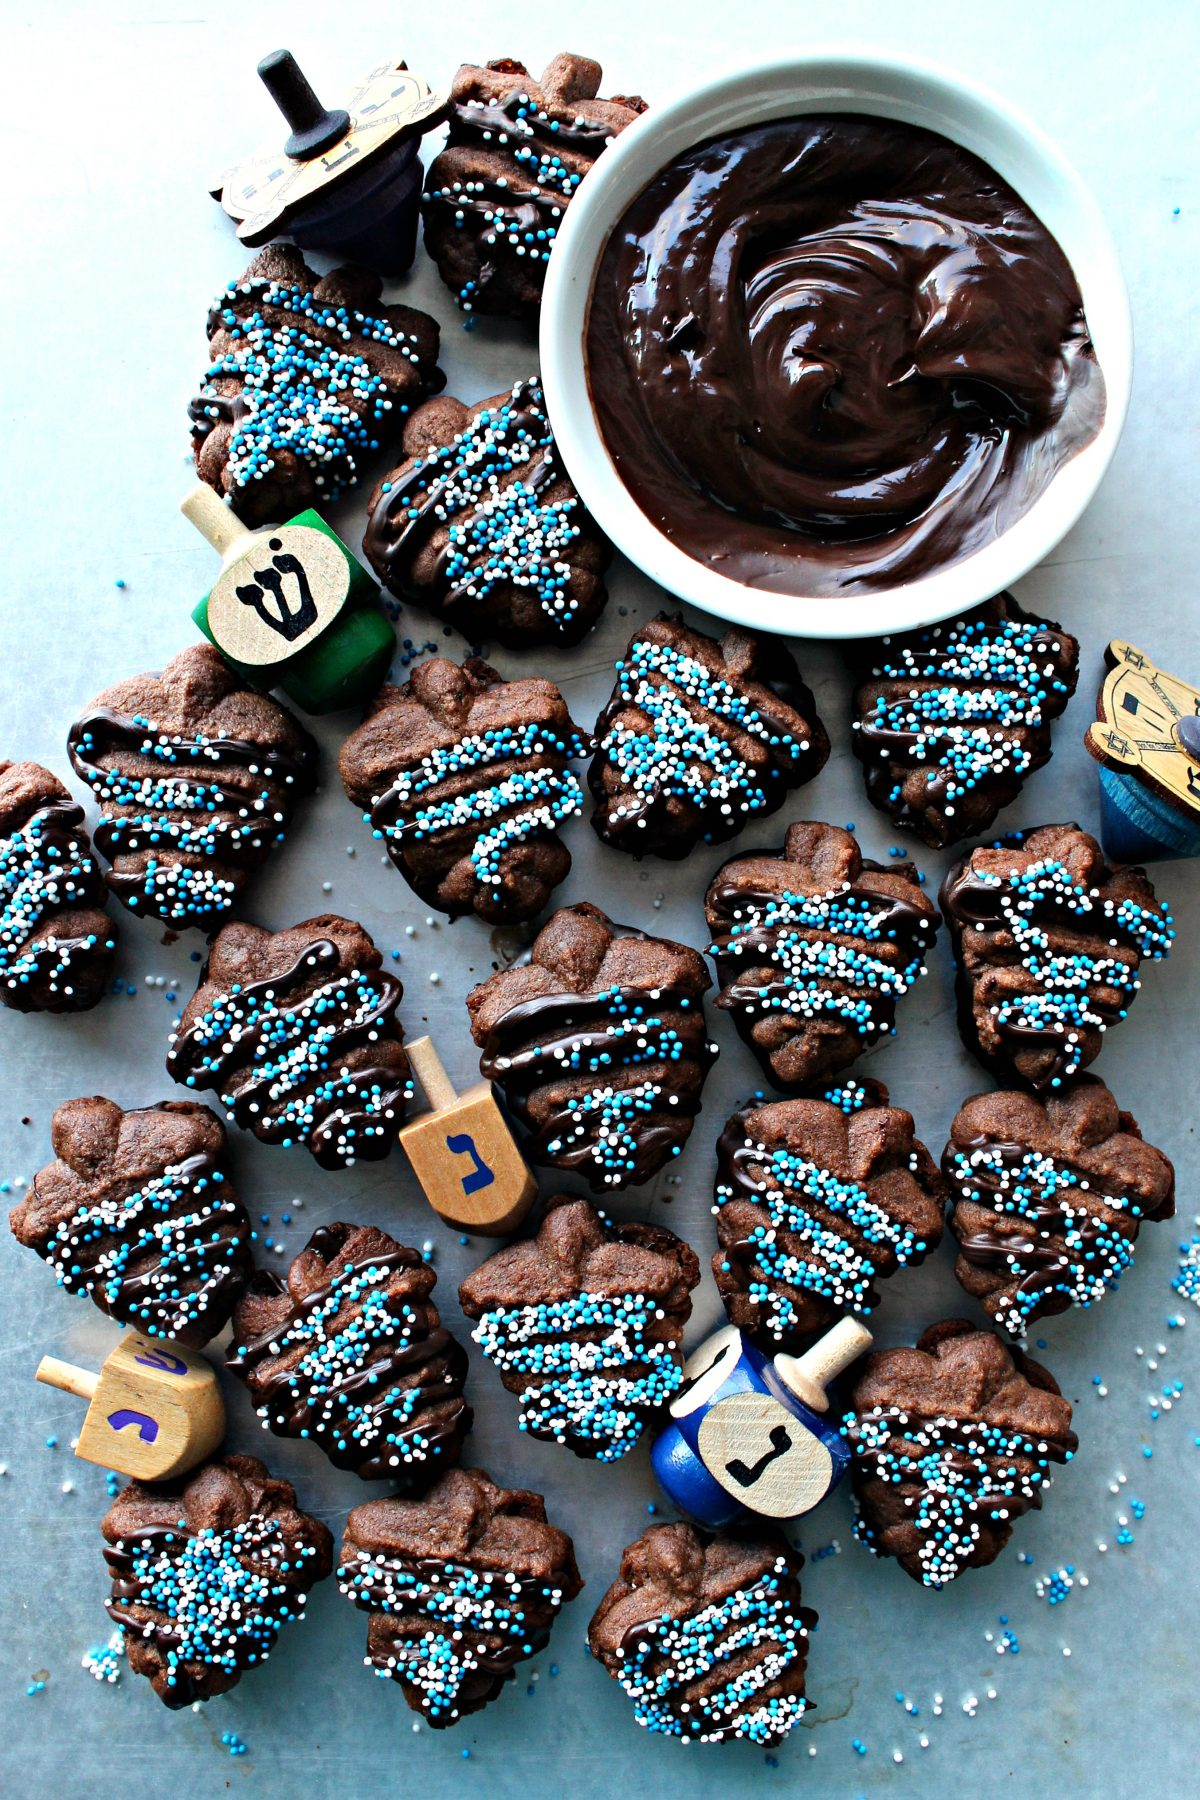 Chocolate cookie press cookies shaped like dreidels, sandwiched with chocolate, sprinkled with blue and white nonpareils.